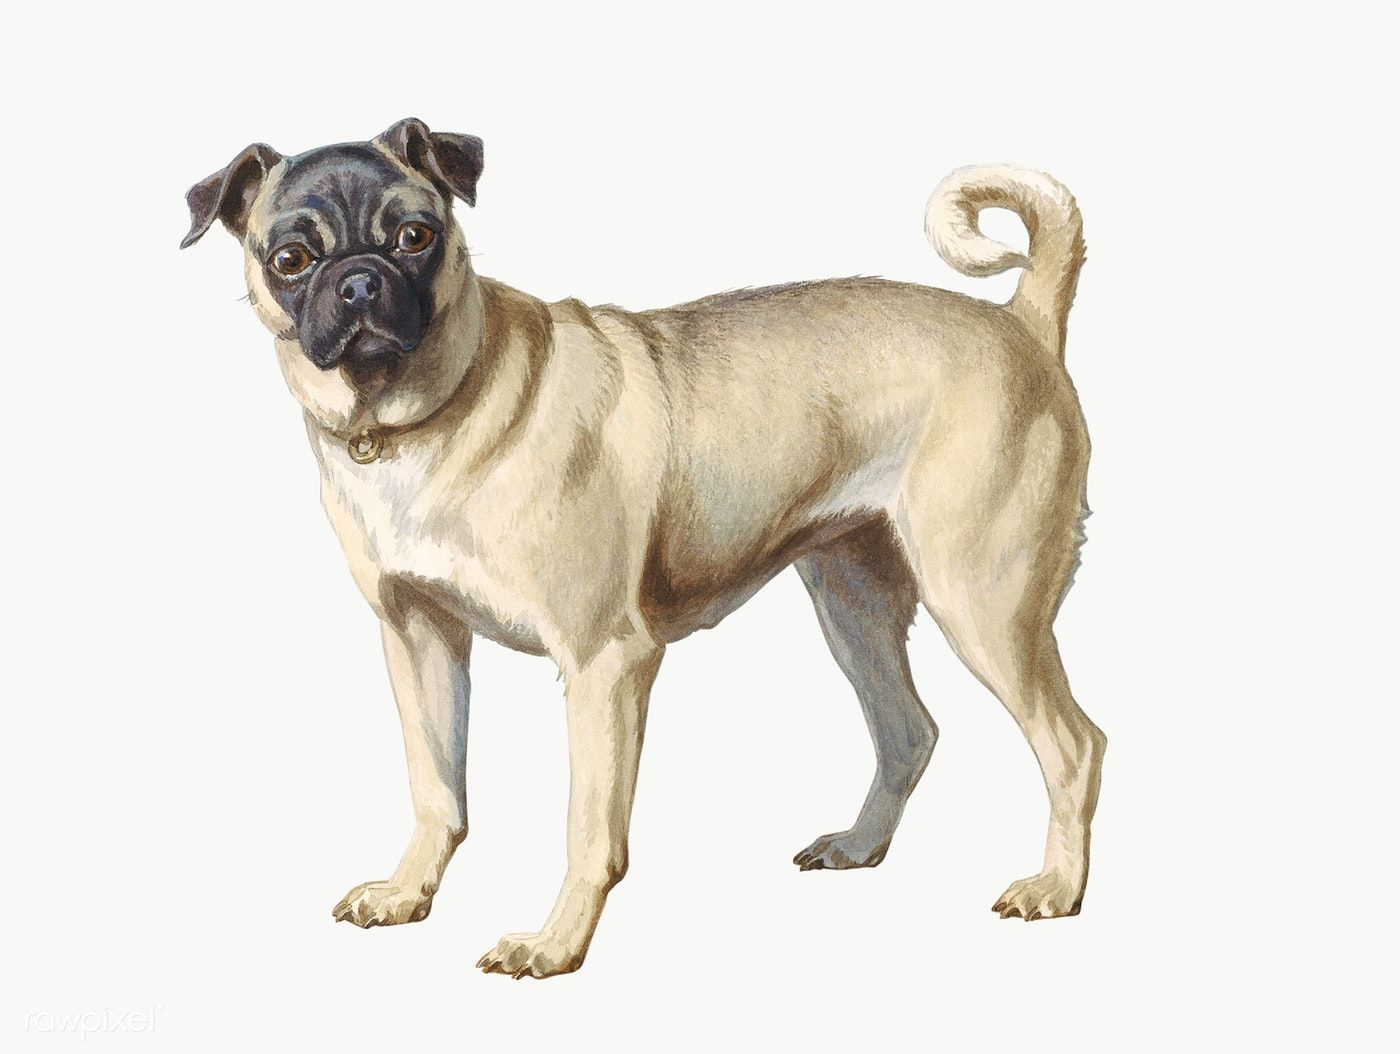 Download Premium Png Of Painting Of A Small Pug Dog Transparent